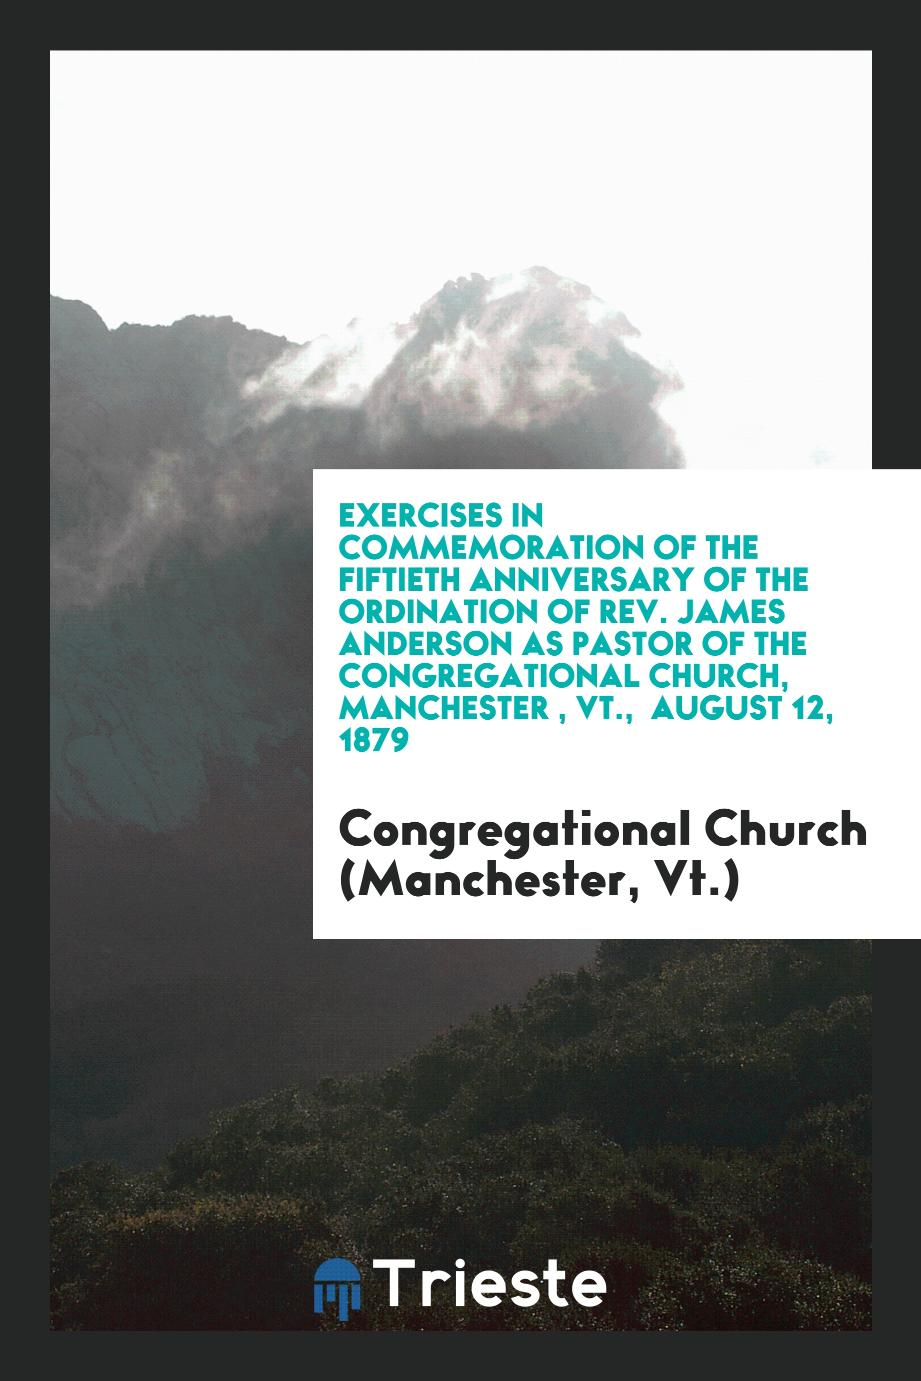 Exercises in Commemoration of the Fiftieth Anniversary of the Ordination of Rev. James Anderson as pastor of the congregational church, Manchester , VT., August 12, 1879